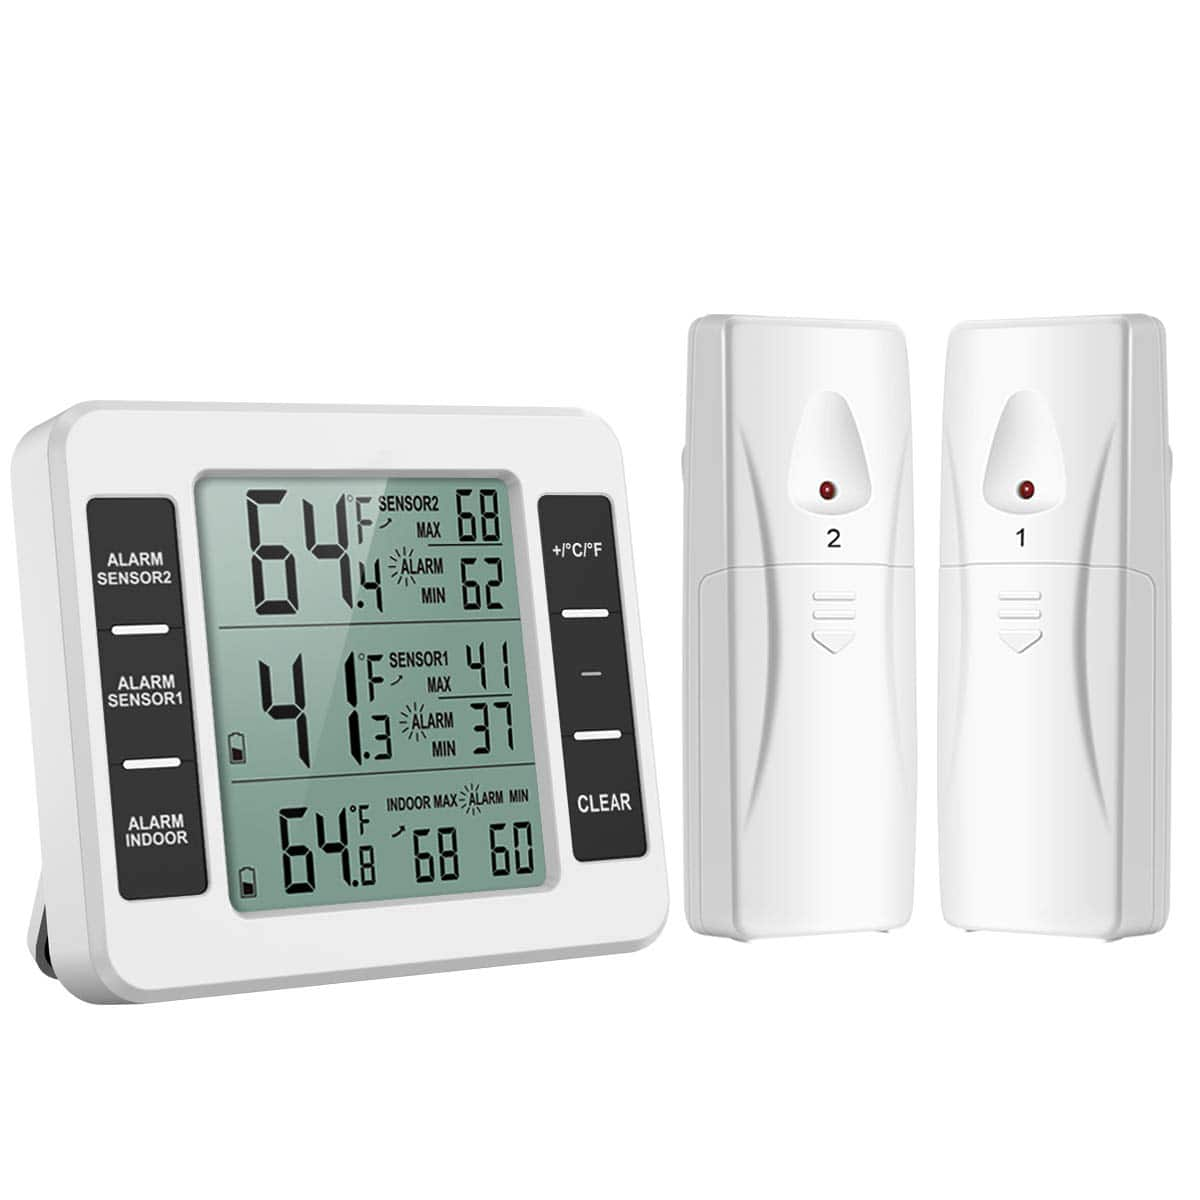 Refrigerator Thermometer with 2 Wireless Sensors, Audible Alarm, Min and Max Record, LCD Display for Home $11.69